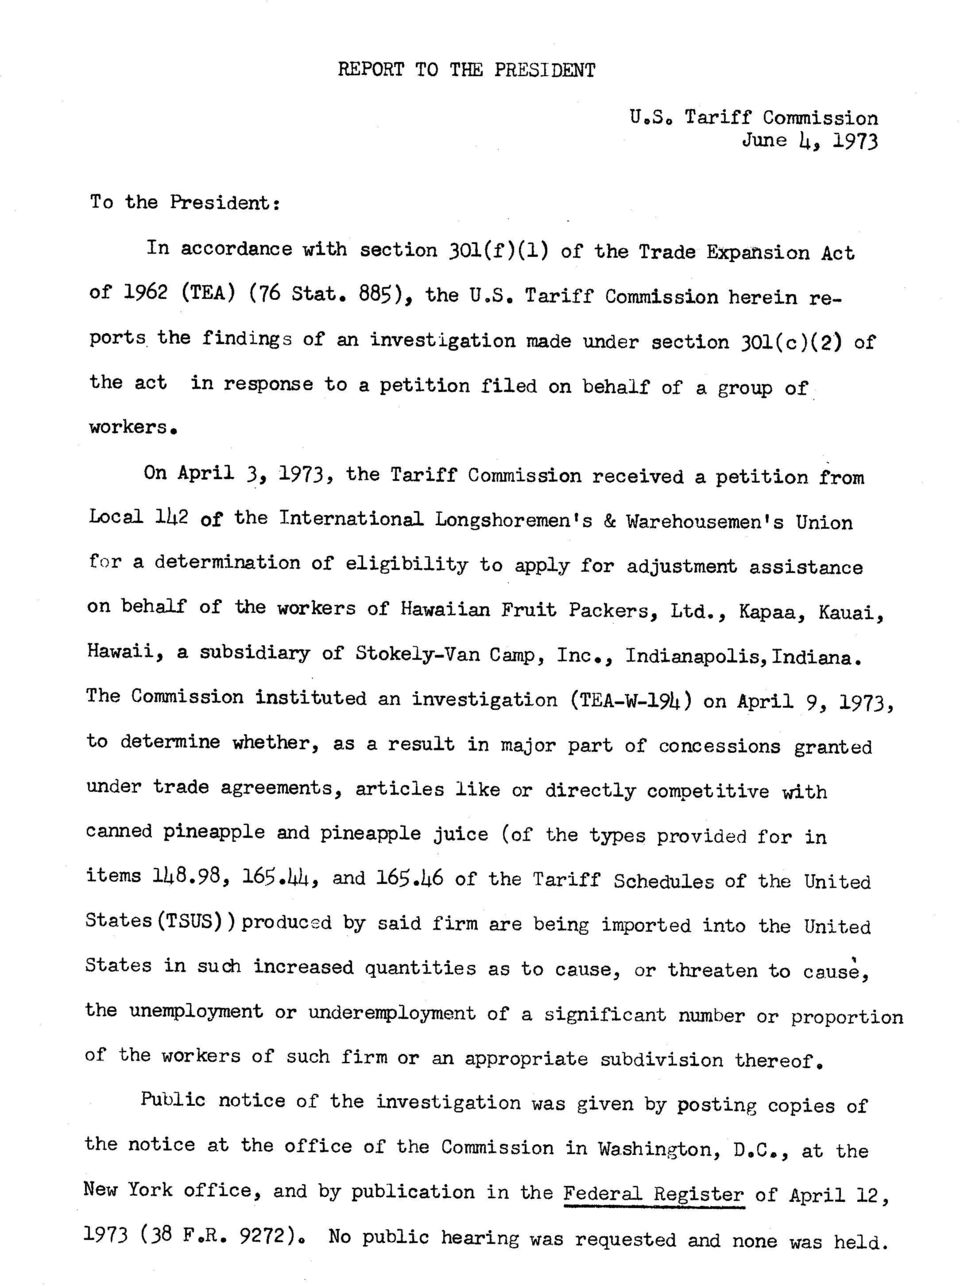 On April 3, 1973, the Tariff Commission received a petition from Local 1L2 of the International Longshoremen's & Warehousemen's Union for a determination of eligibility to apply for adjustment